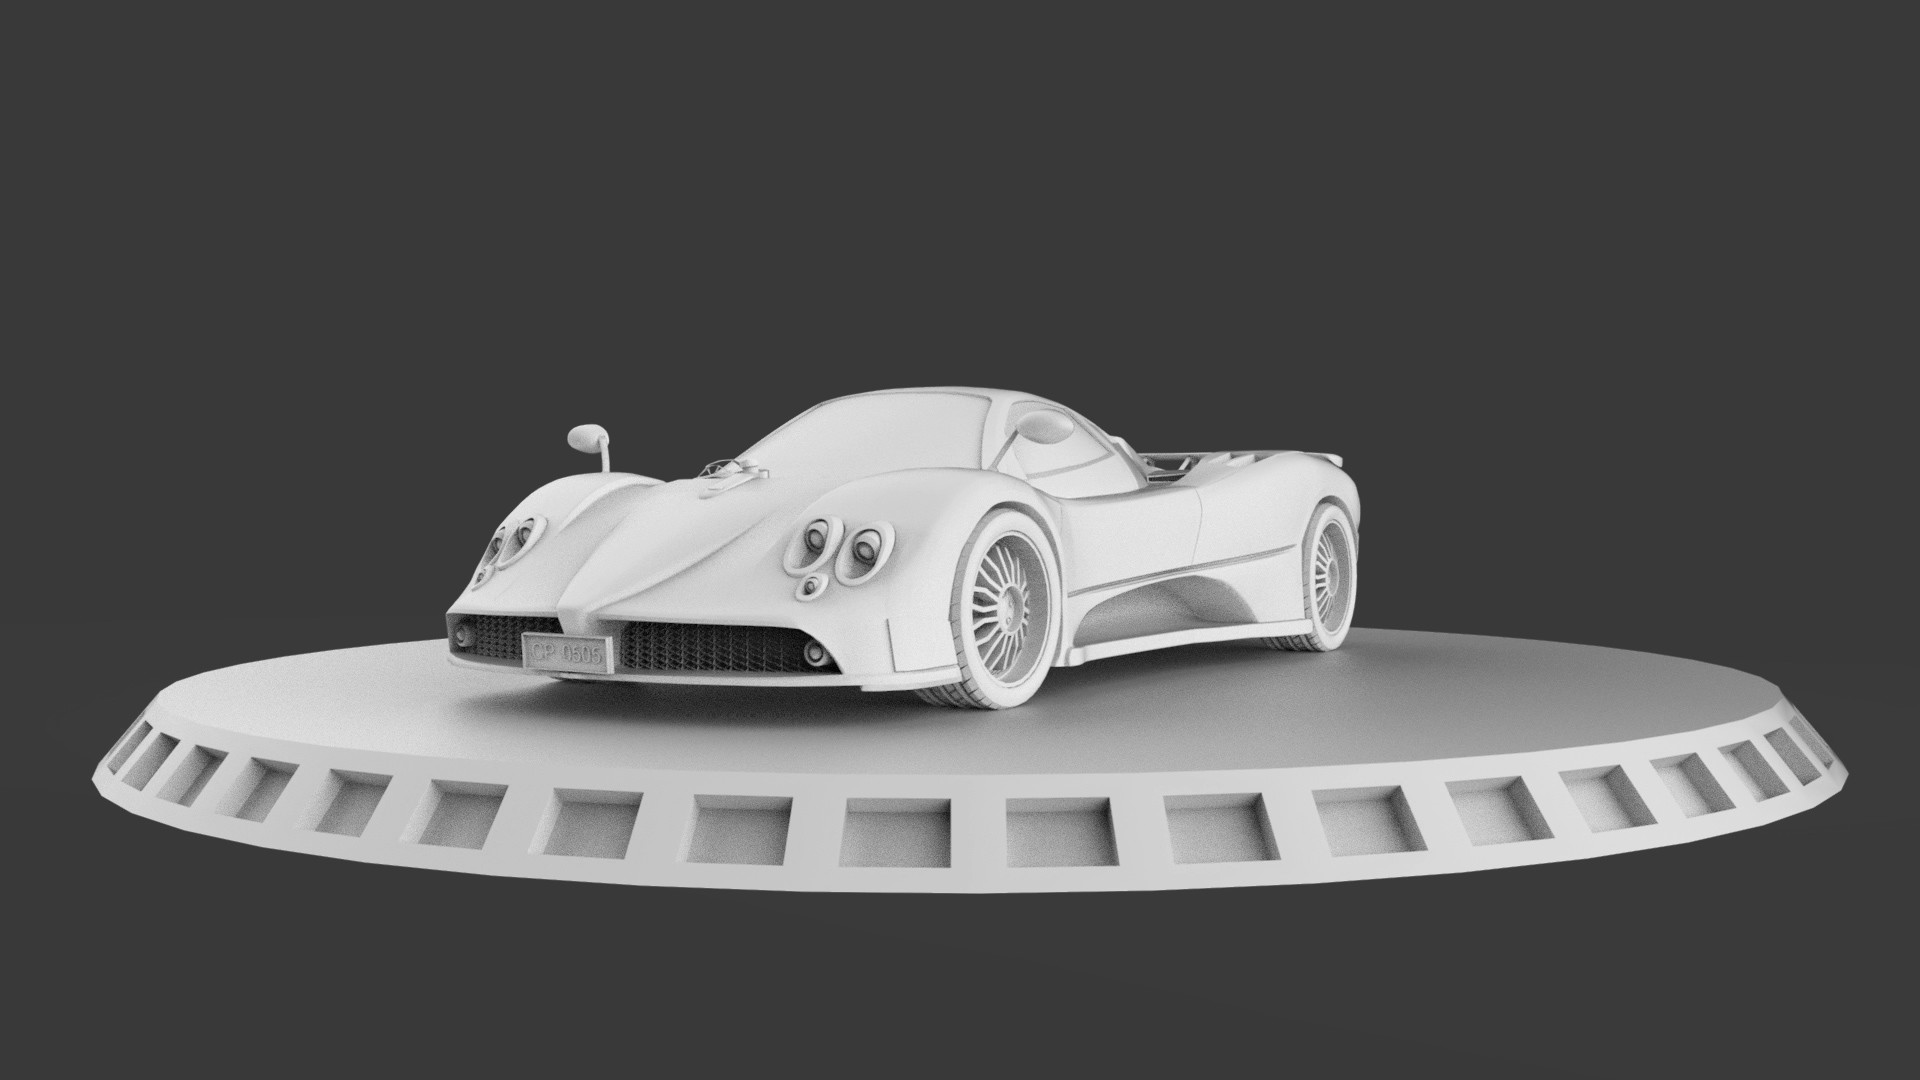 Charchit Porwal - PAGANI ZONDA F 3D CAR MODEL